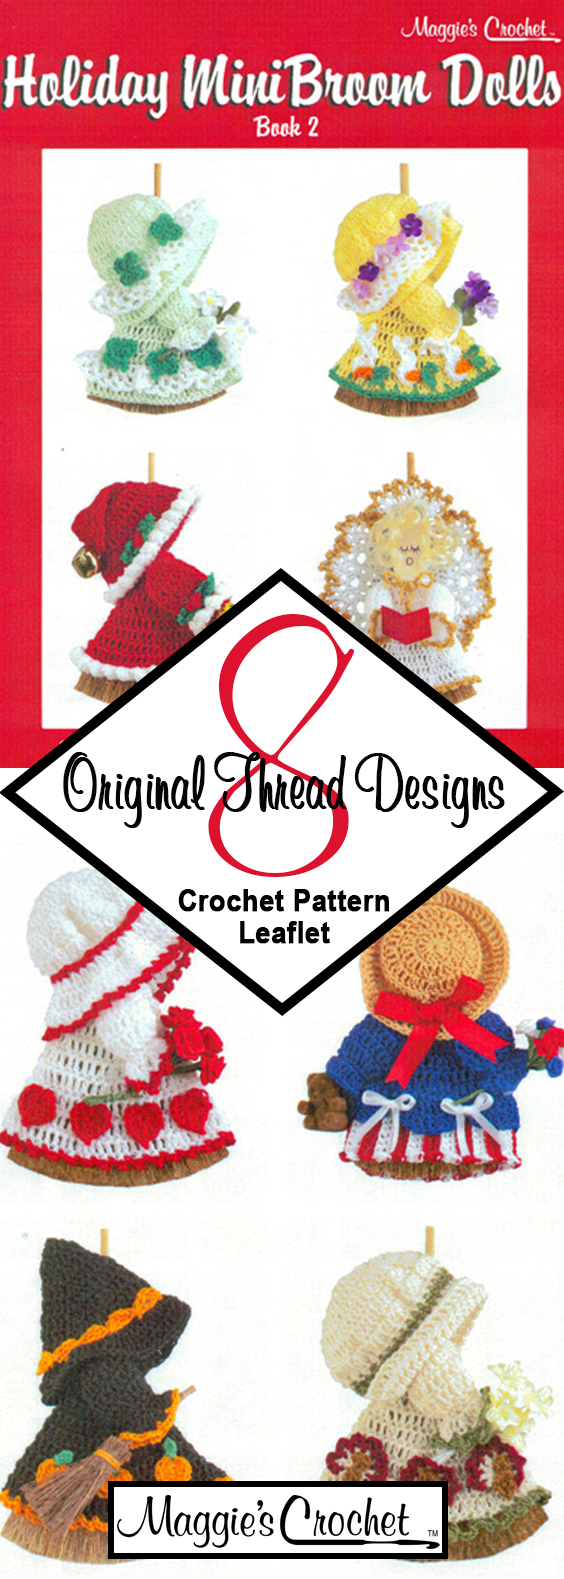 Crochet Pattern Leaflet Holiday Mini Broom Dolls Book 2 #broomdolls Celebrate the holidays with this festive collection of Holiday Mini Broom Dolls. Holiday Mini Broom Dolls 2 Crochet Pattern Leaflet contains crochet eight cheerful dresses in crochet cotton thread (size 10). They are fitted over a 6 flat dried pine broom – size includes 3 handle. Use them as wall décor, fridgies or ornaments. #broomdolls Crochet Pattern Leaflet Holiday Mini Broom Dolls Book 2 #broomdolls Celebrate the holiday #broomdolls